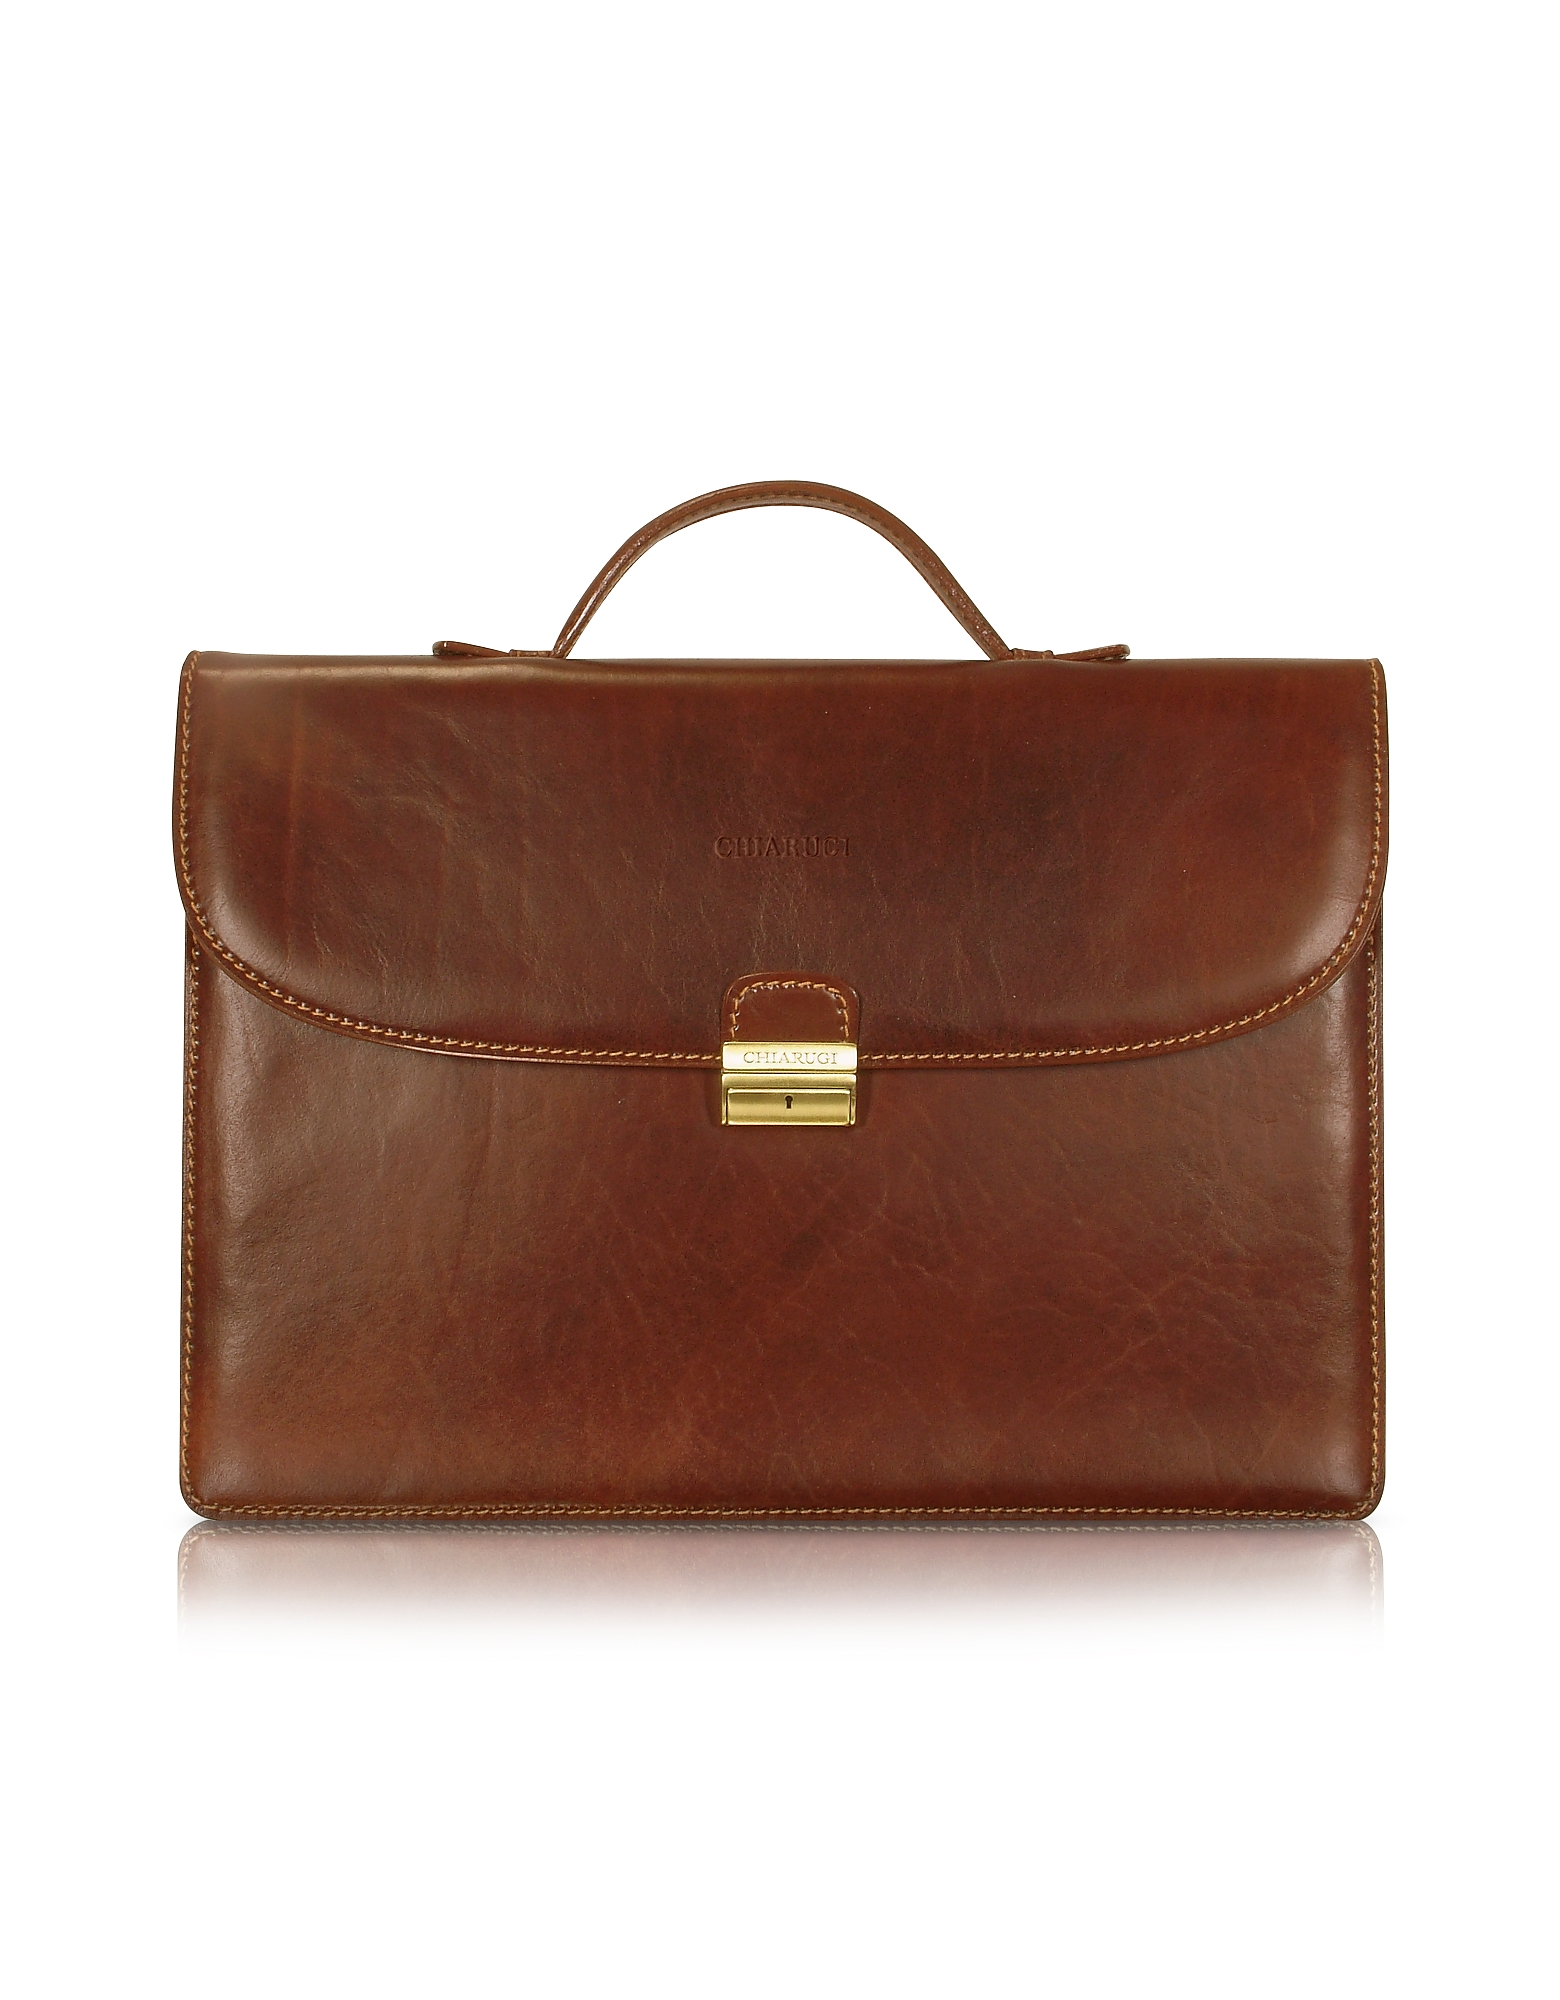 Chiarugi Men's Handmade Brown Leather Single Gusset Briefcase